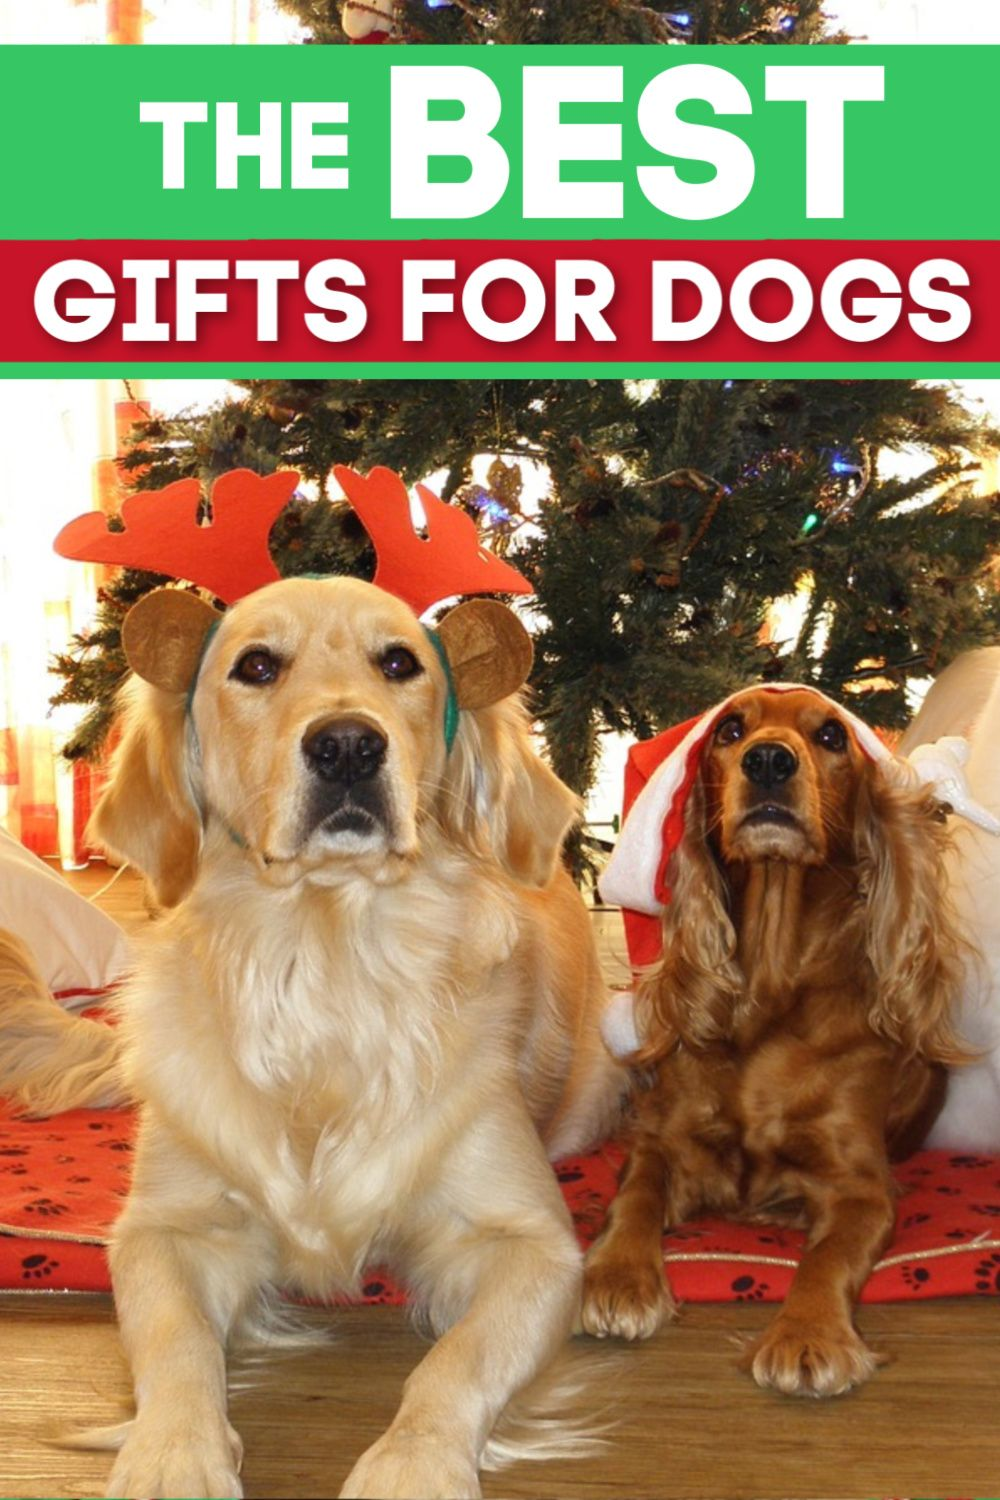 The Best Dog Christmas Gifts A List Of The Best Gift Ideas For Your Dog Dog Christmas Gifts Christmas Dog Holiday Dog Treats